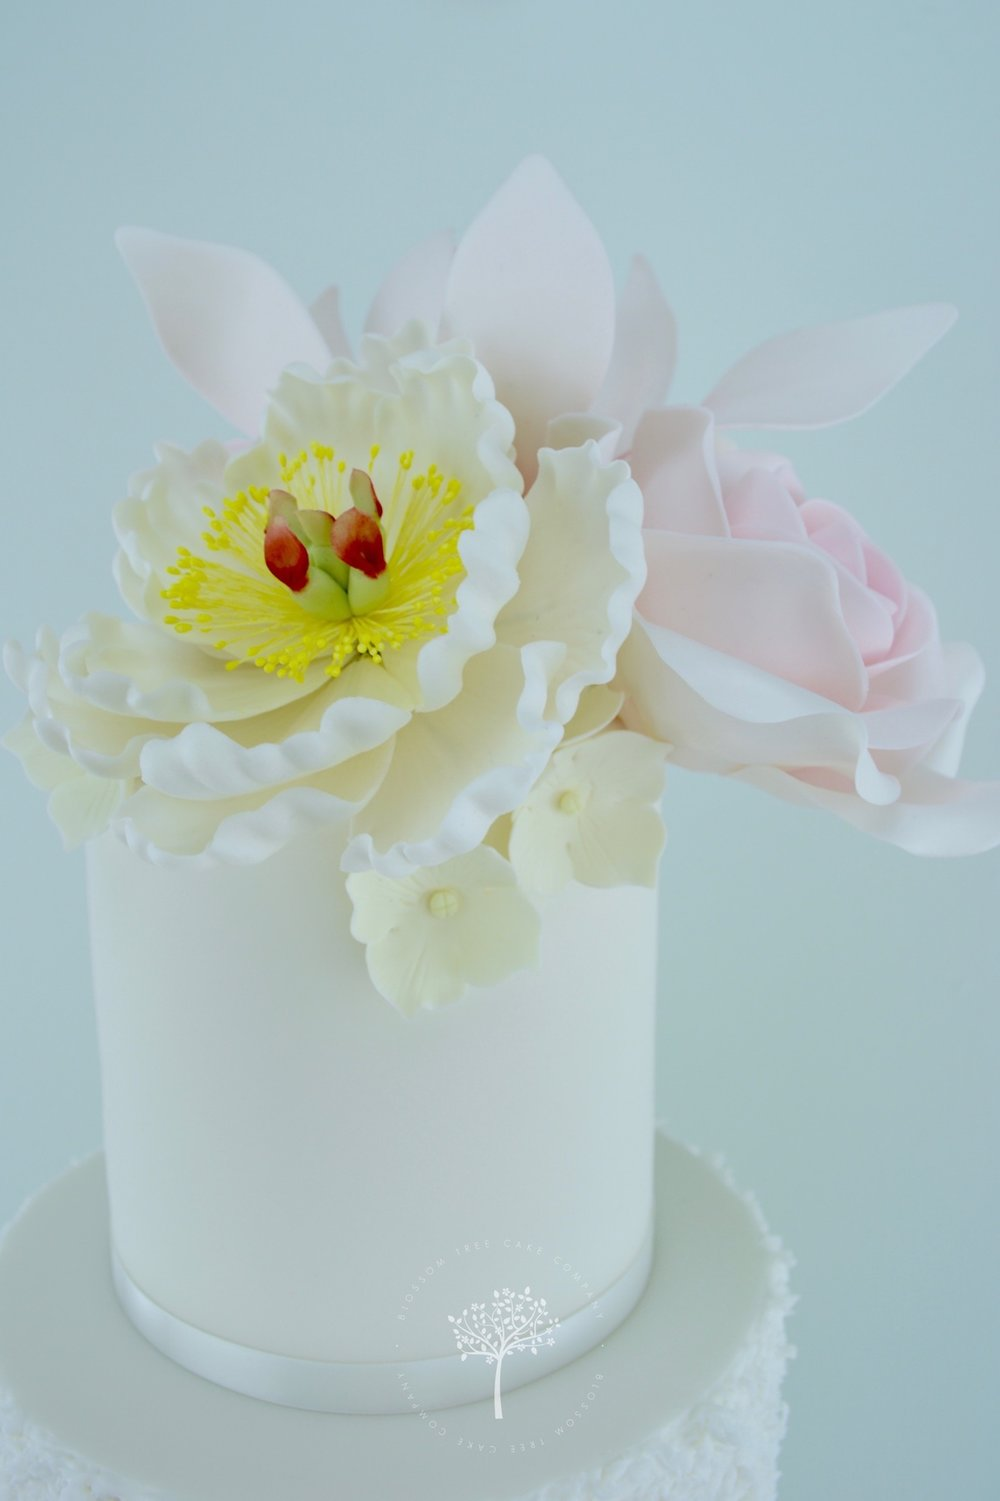 Magnolia Roses and Peony wedding cake by Blossom Tree Cake Company Harrogate North Yorkshire - top sugar peony.jpg